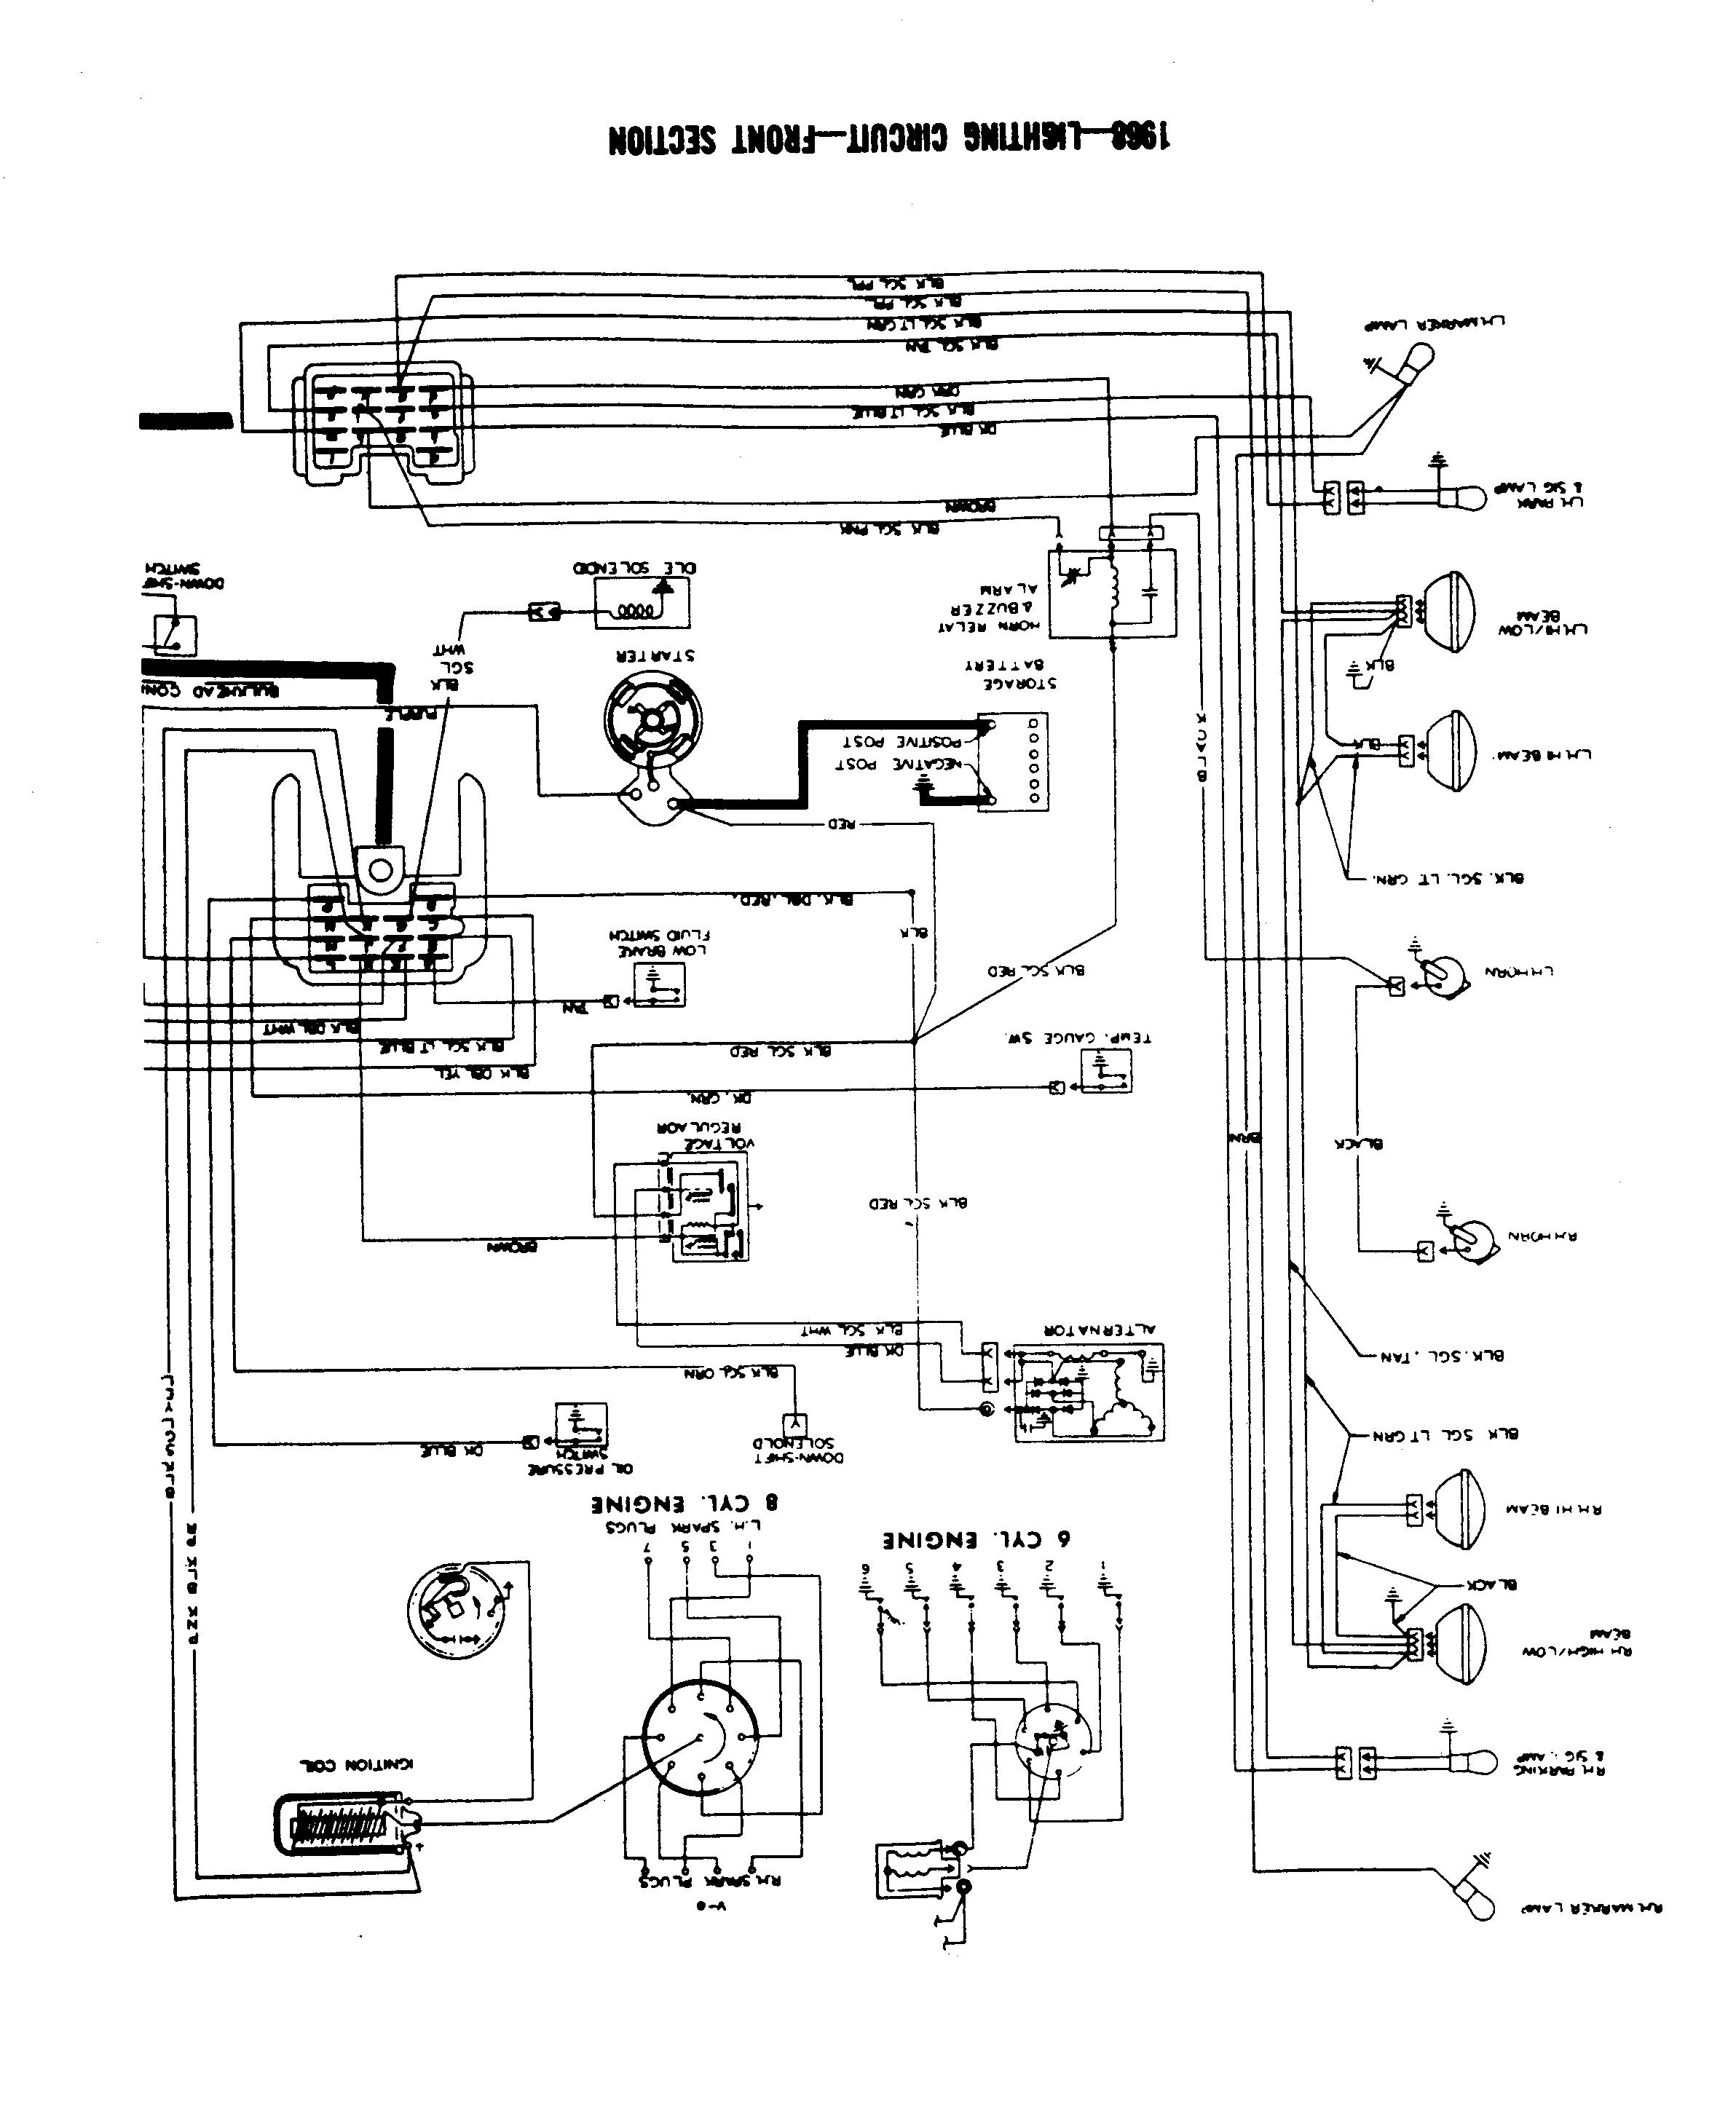 72 Lemans Wiring Diagram Library 1972 Catalina Schematic Click Image For Larger Version Name 68 Page 3